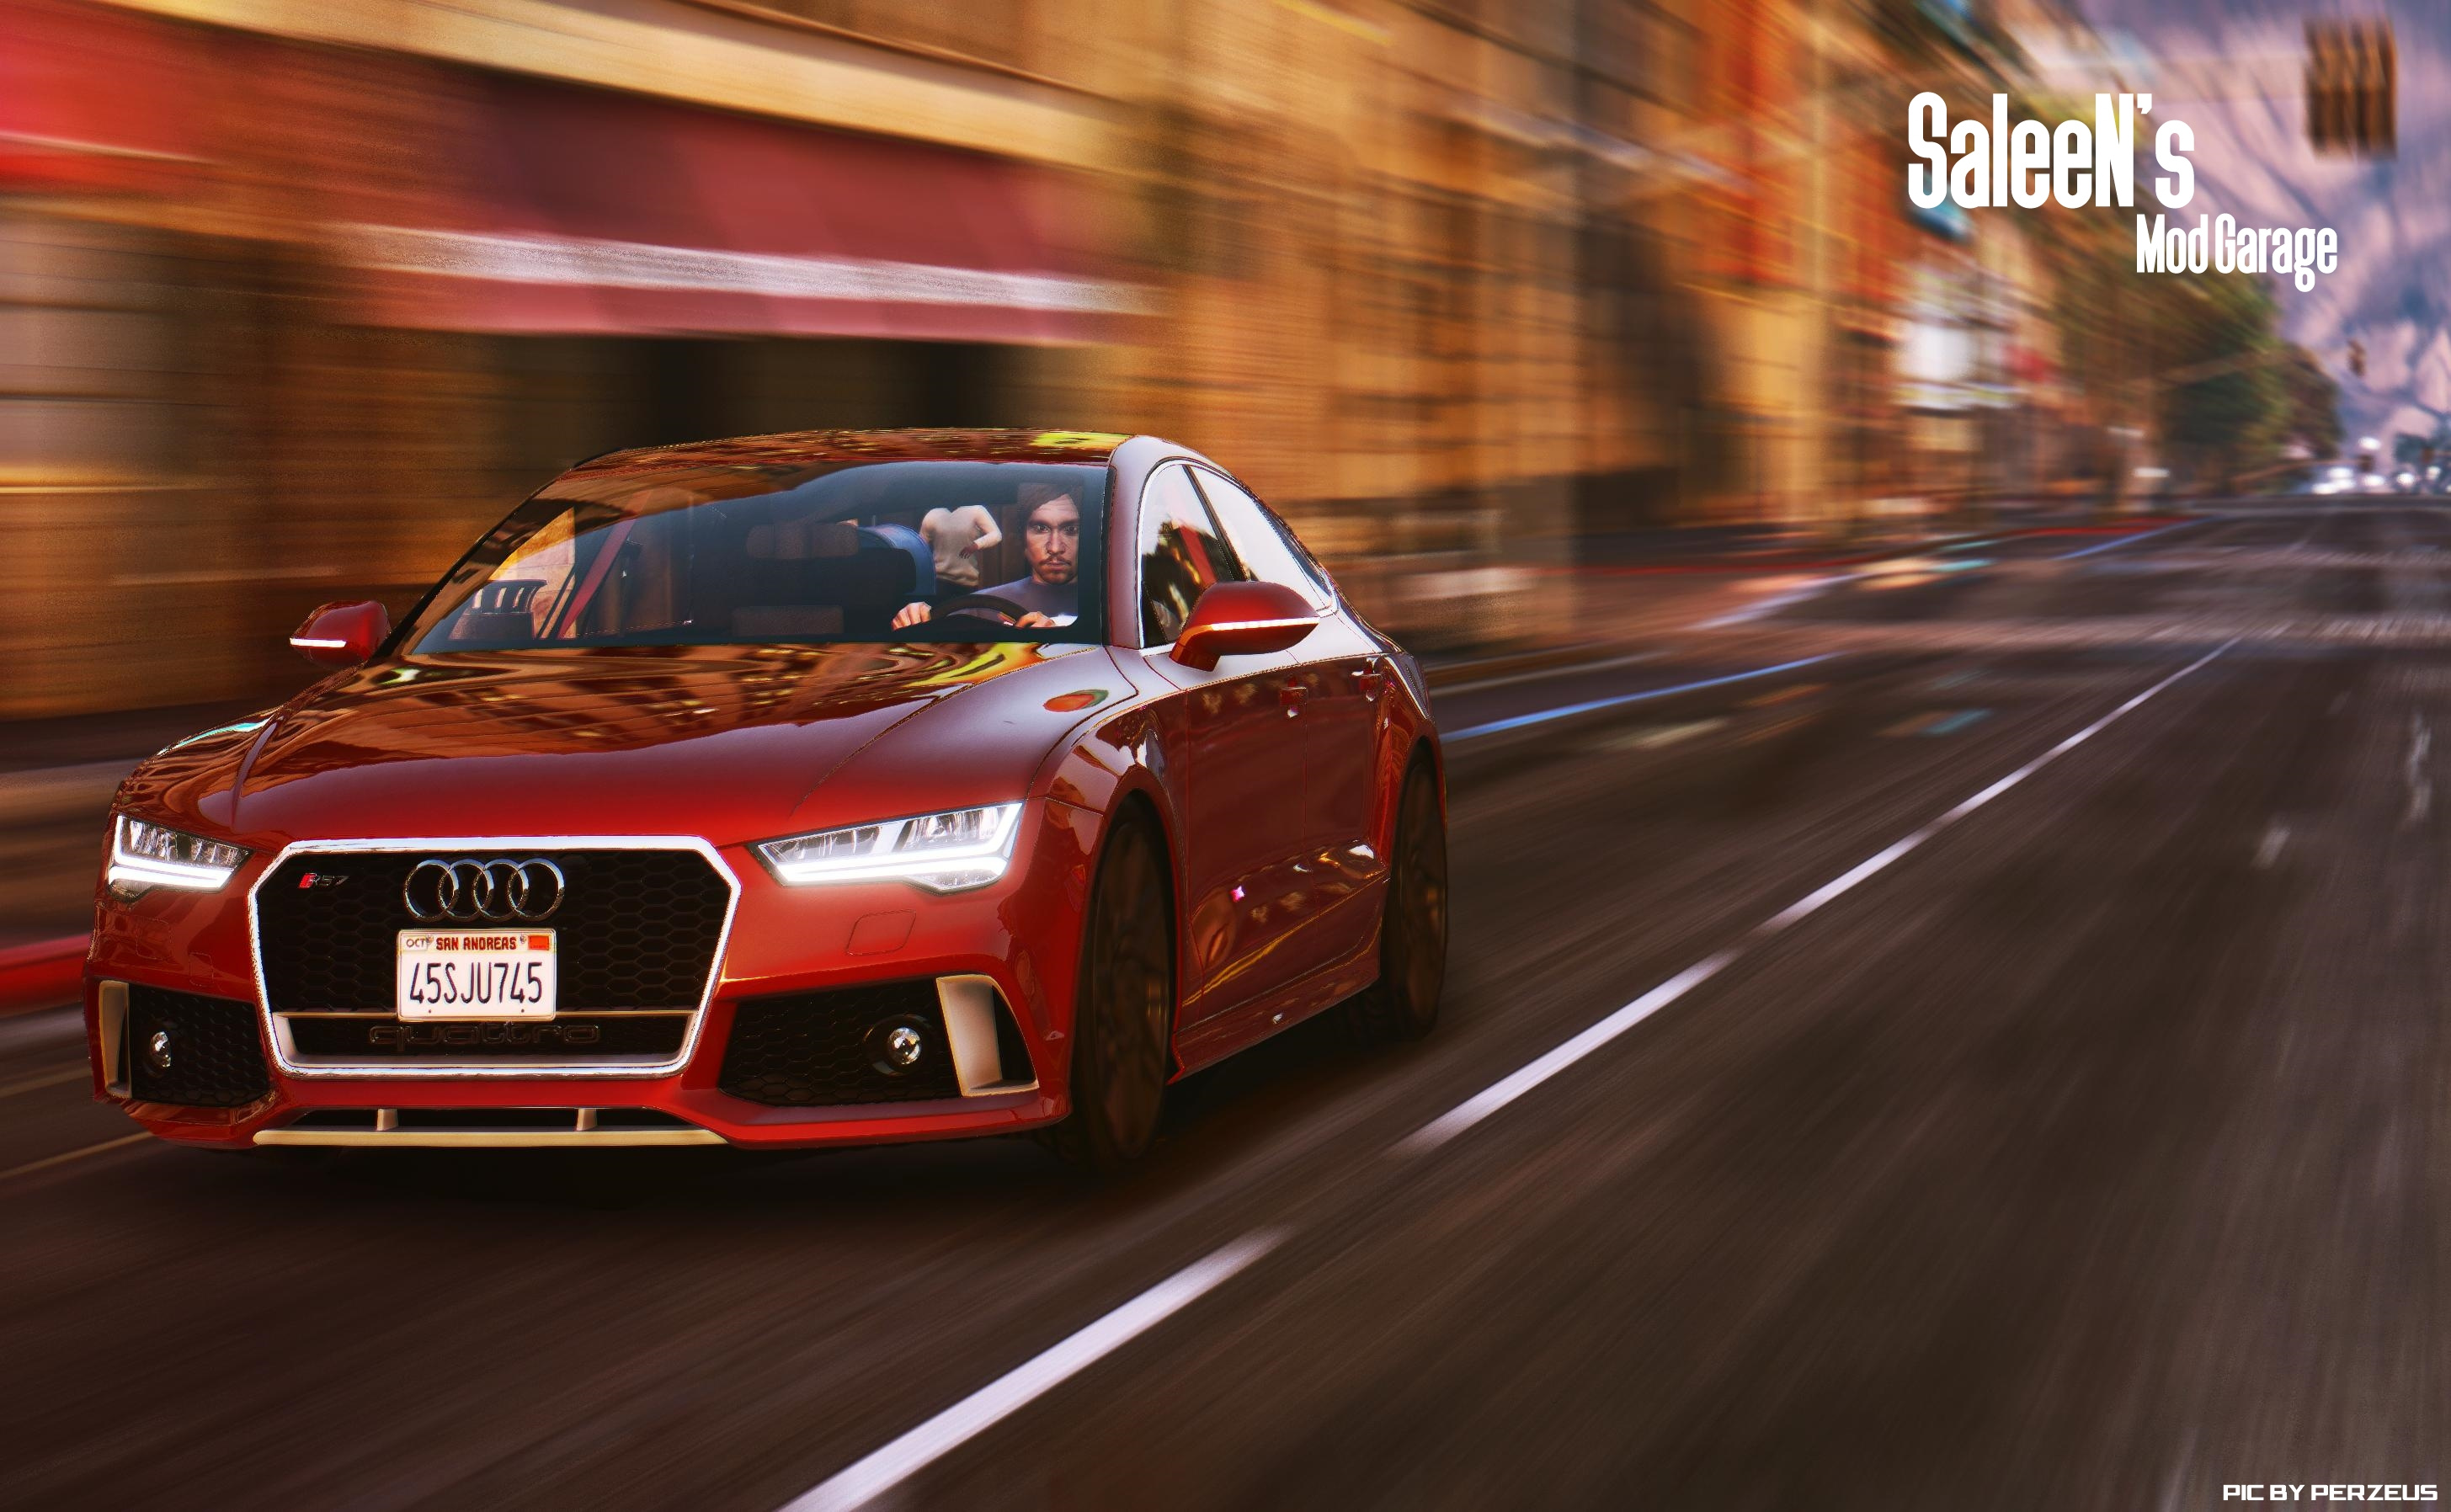 2015 Audi Rs7 Sportback Add On Replace 2017 With A Red Colour 0e3ce0 Ucunbl1